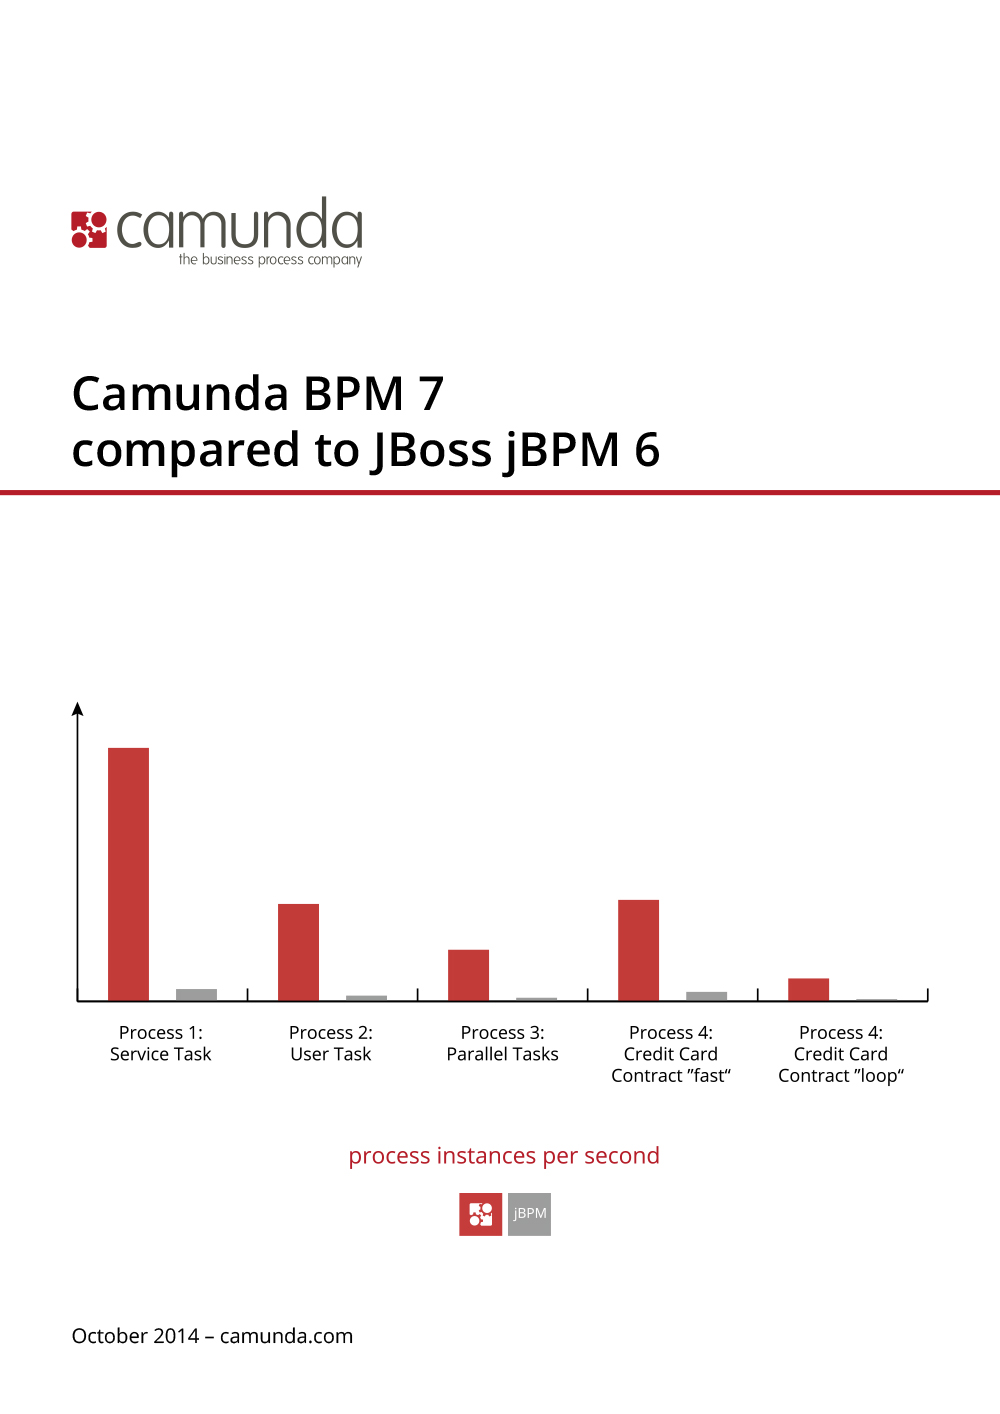 Camunda BPM 7 compared to JBoss jBPM 6